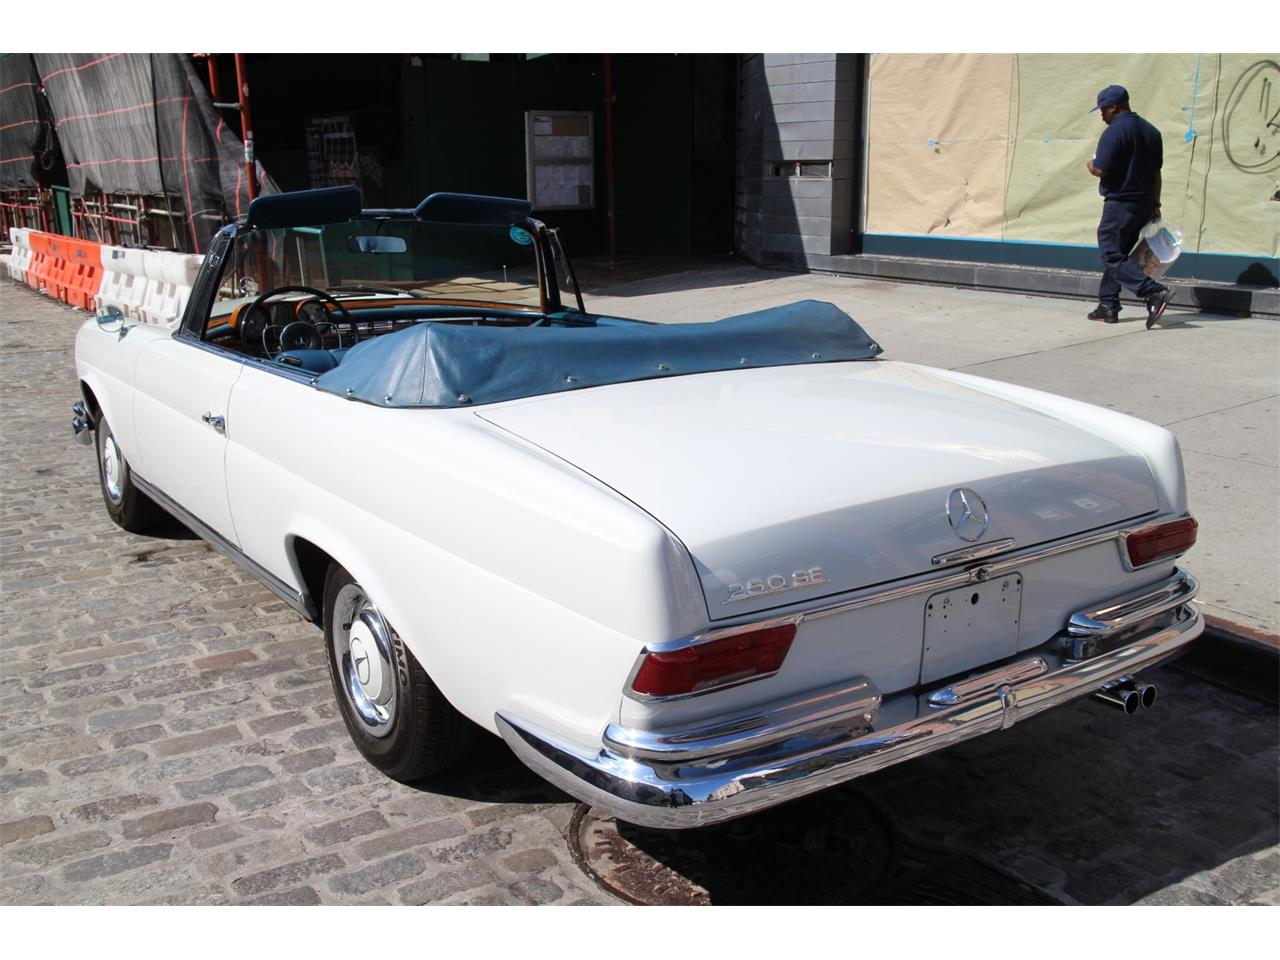 1967 Mercedes-Benz 250SE (CC-1070330) for sale in New York, New York